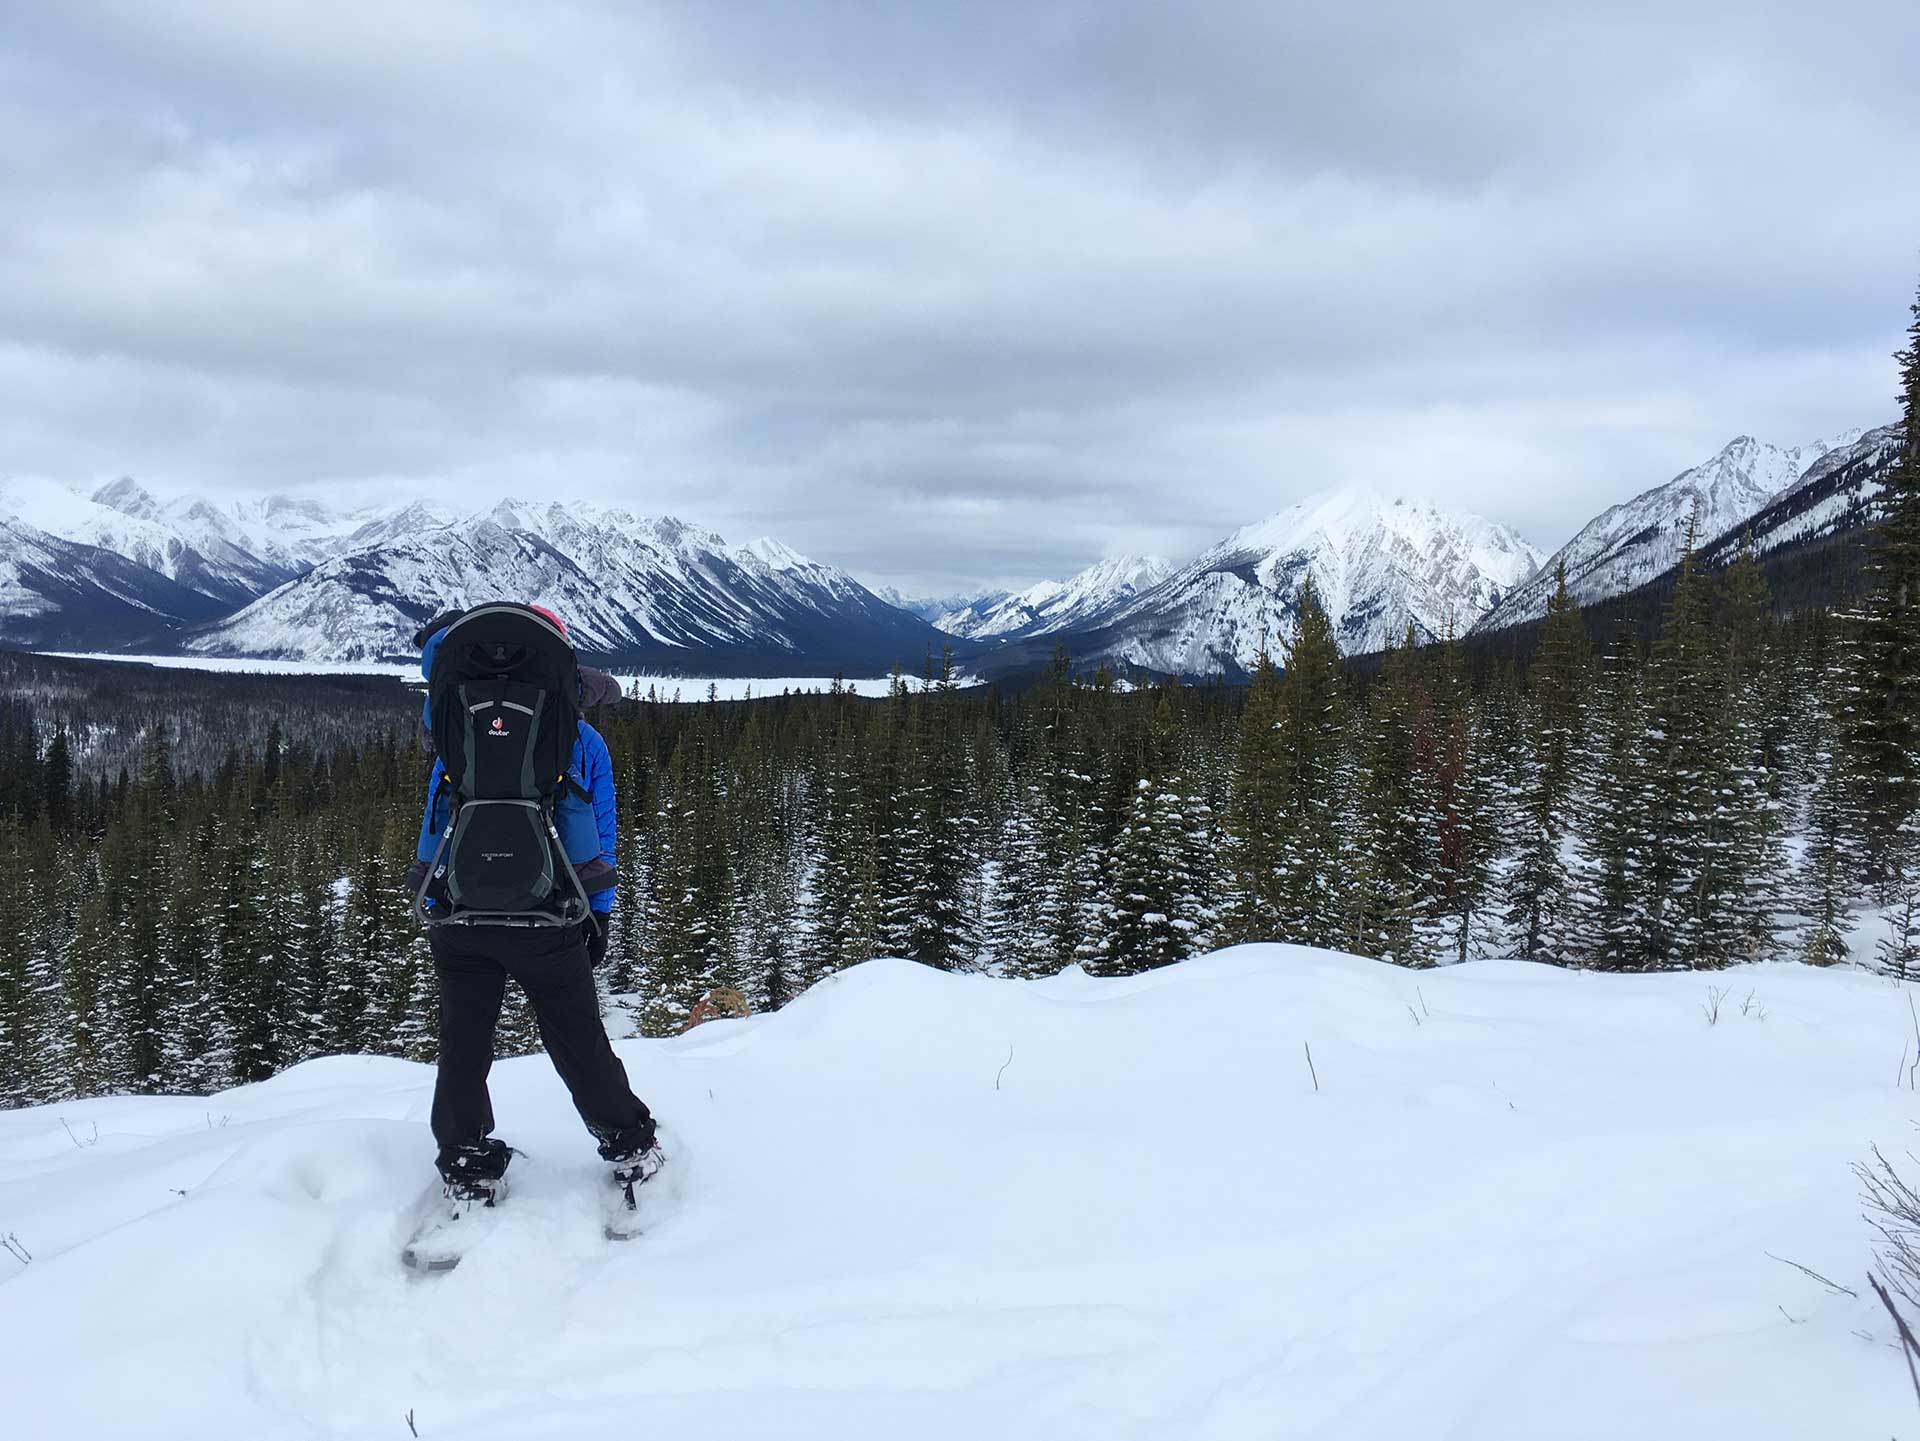 snowshoeing with a baby in a backpack carrier